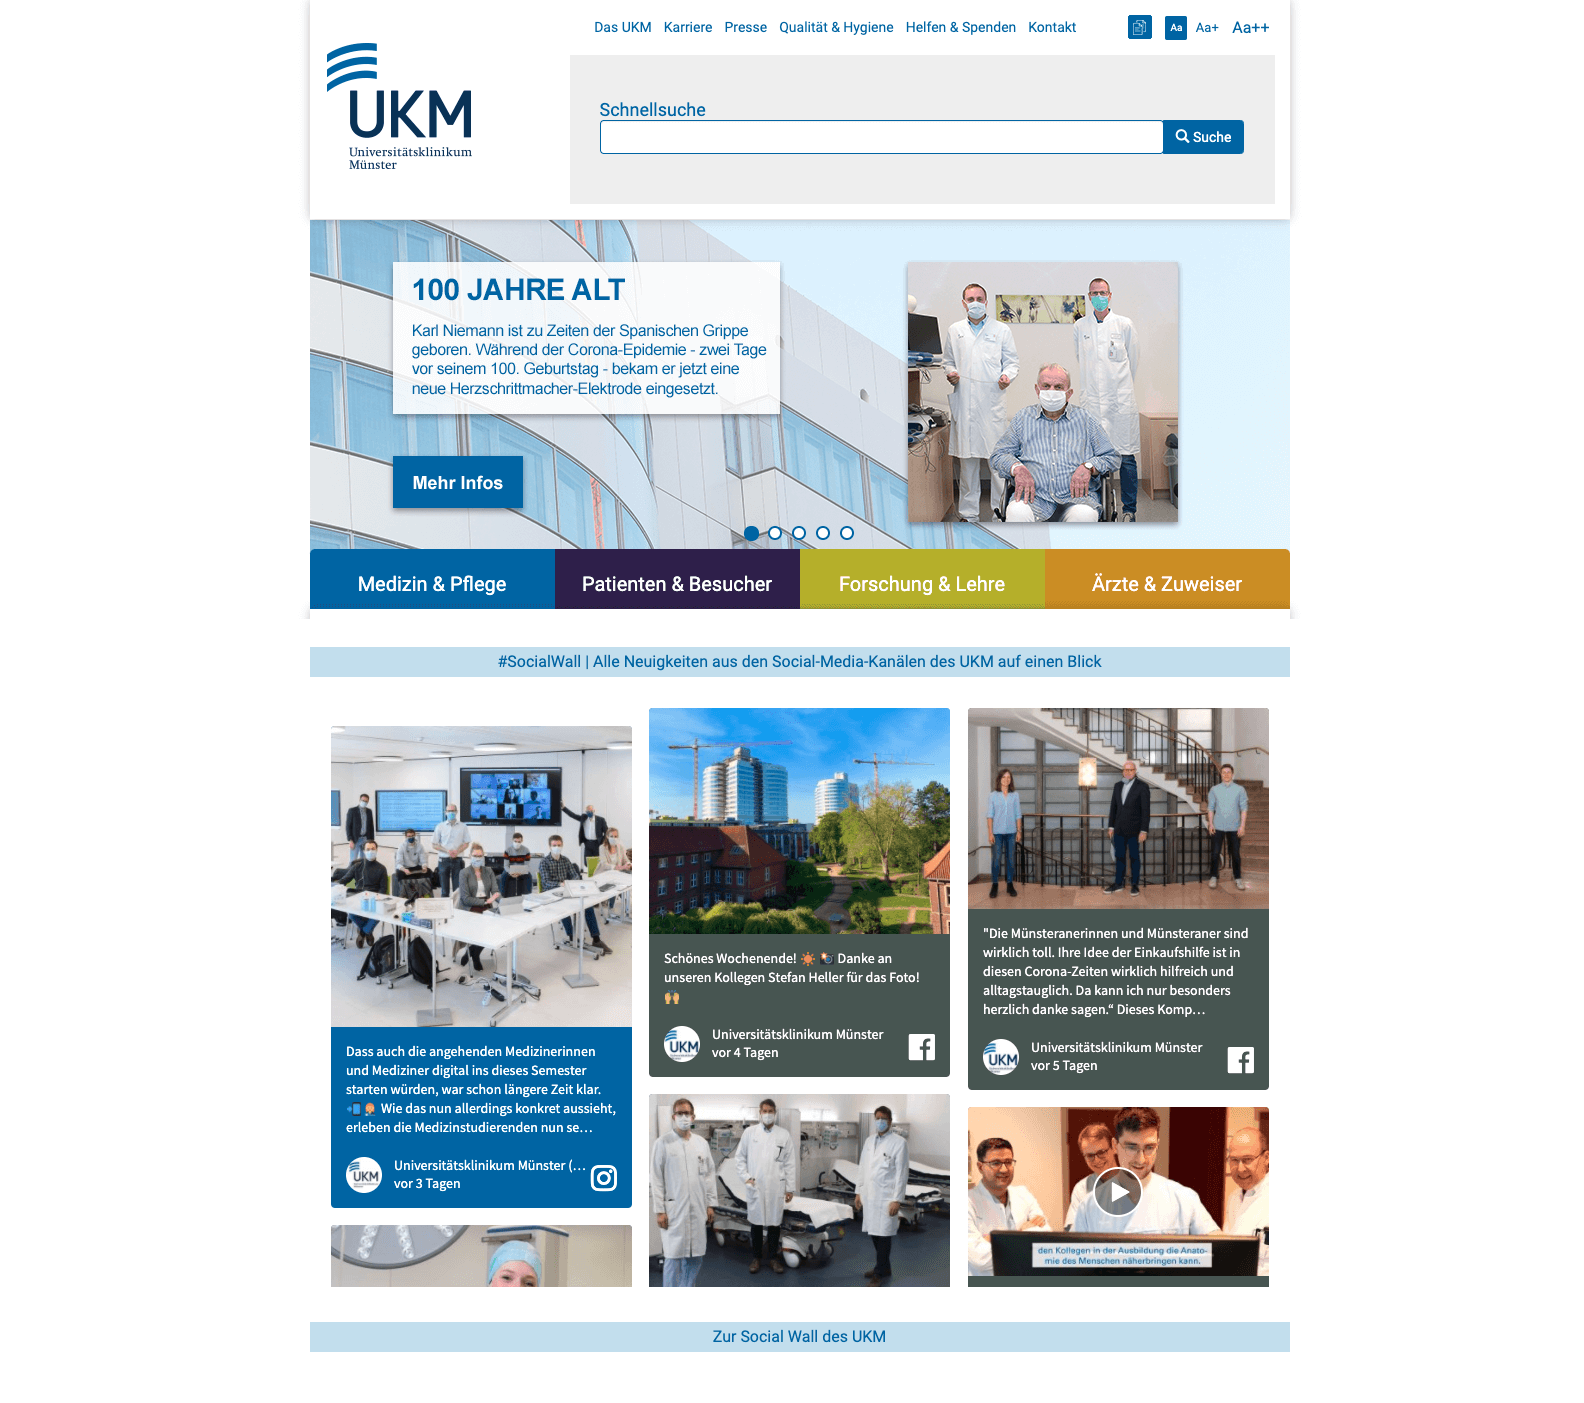 Screenshot of the Münster University Hospital website, which has the social media hub embedded on the homepage. The social wall shows various posts made by Münster University Hospital on Facebook and Instagram.